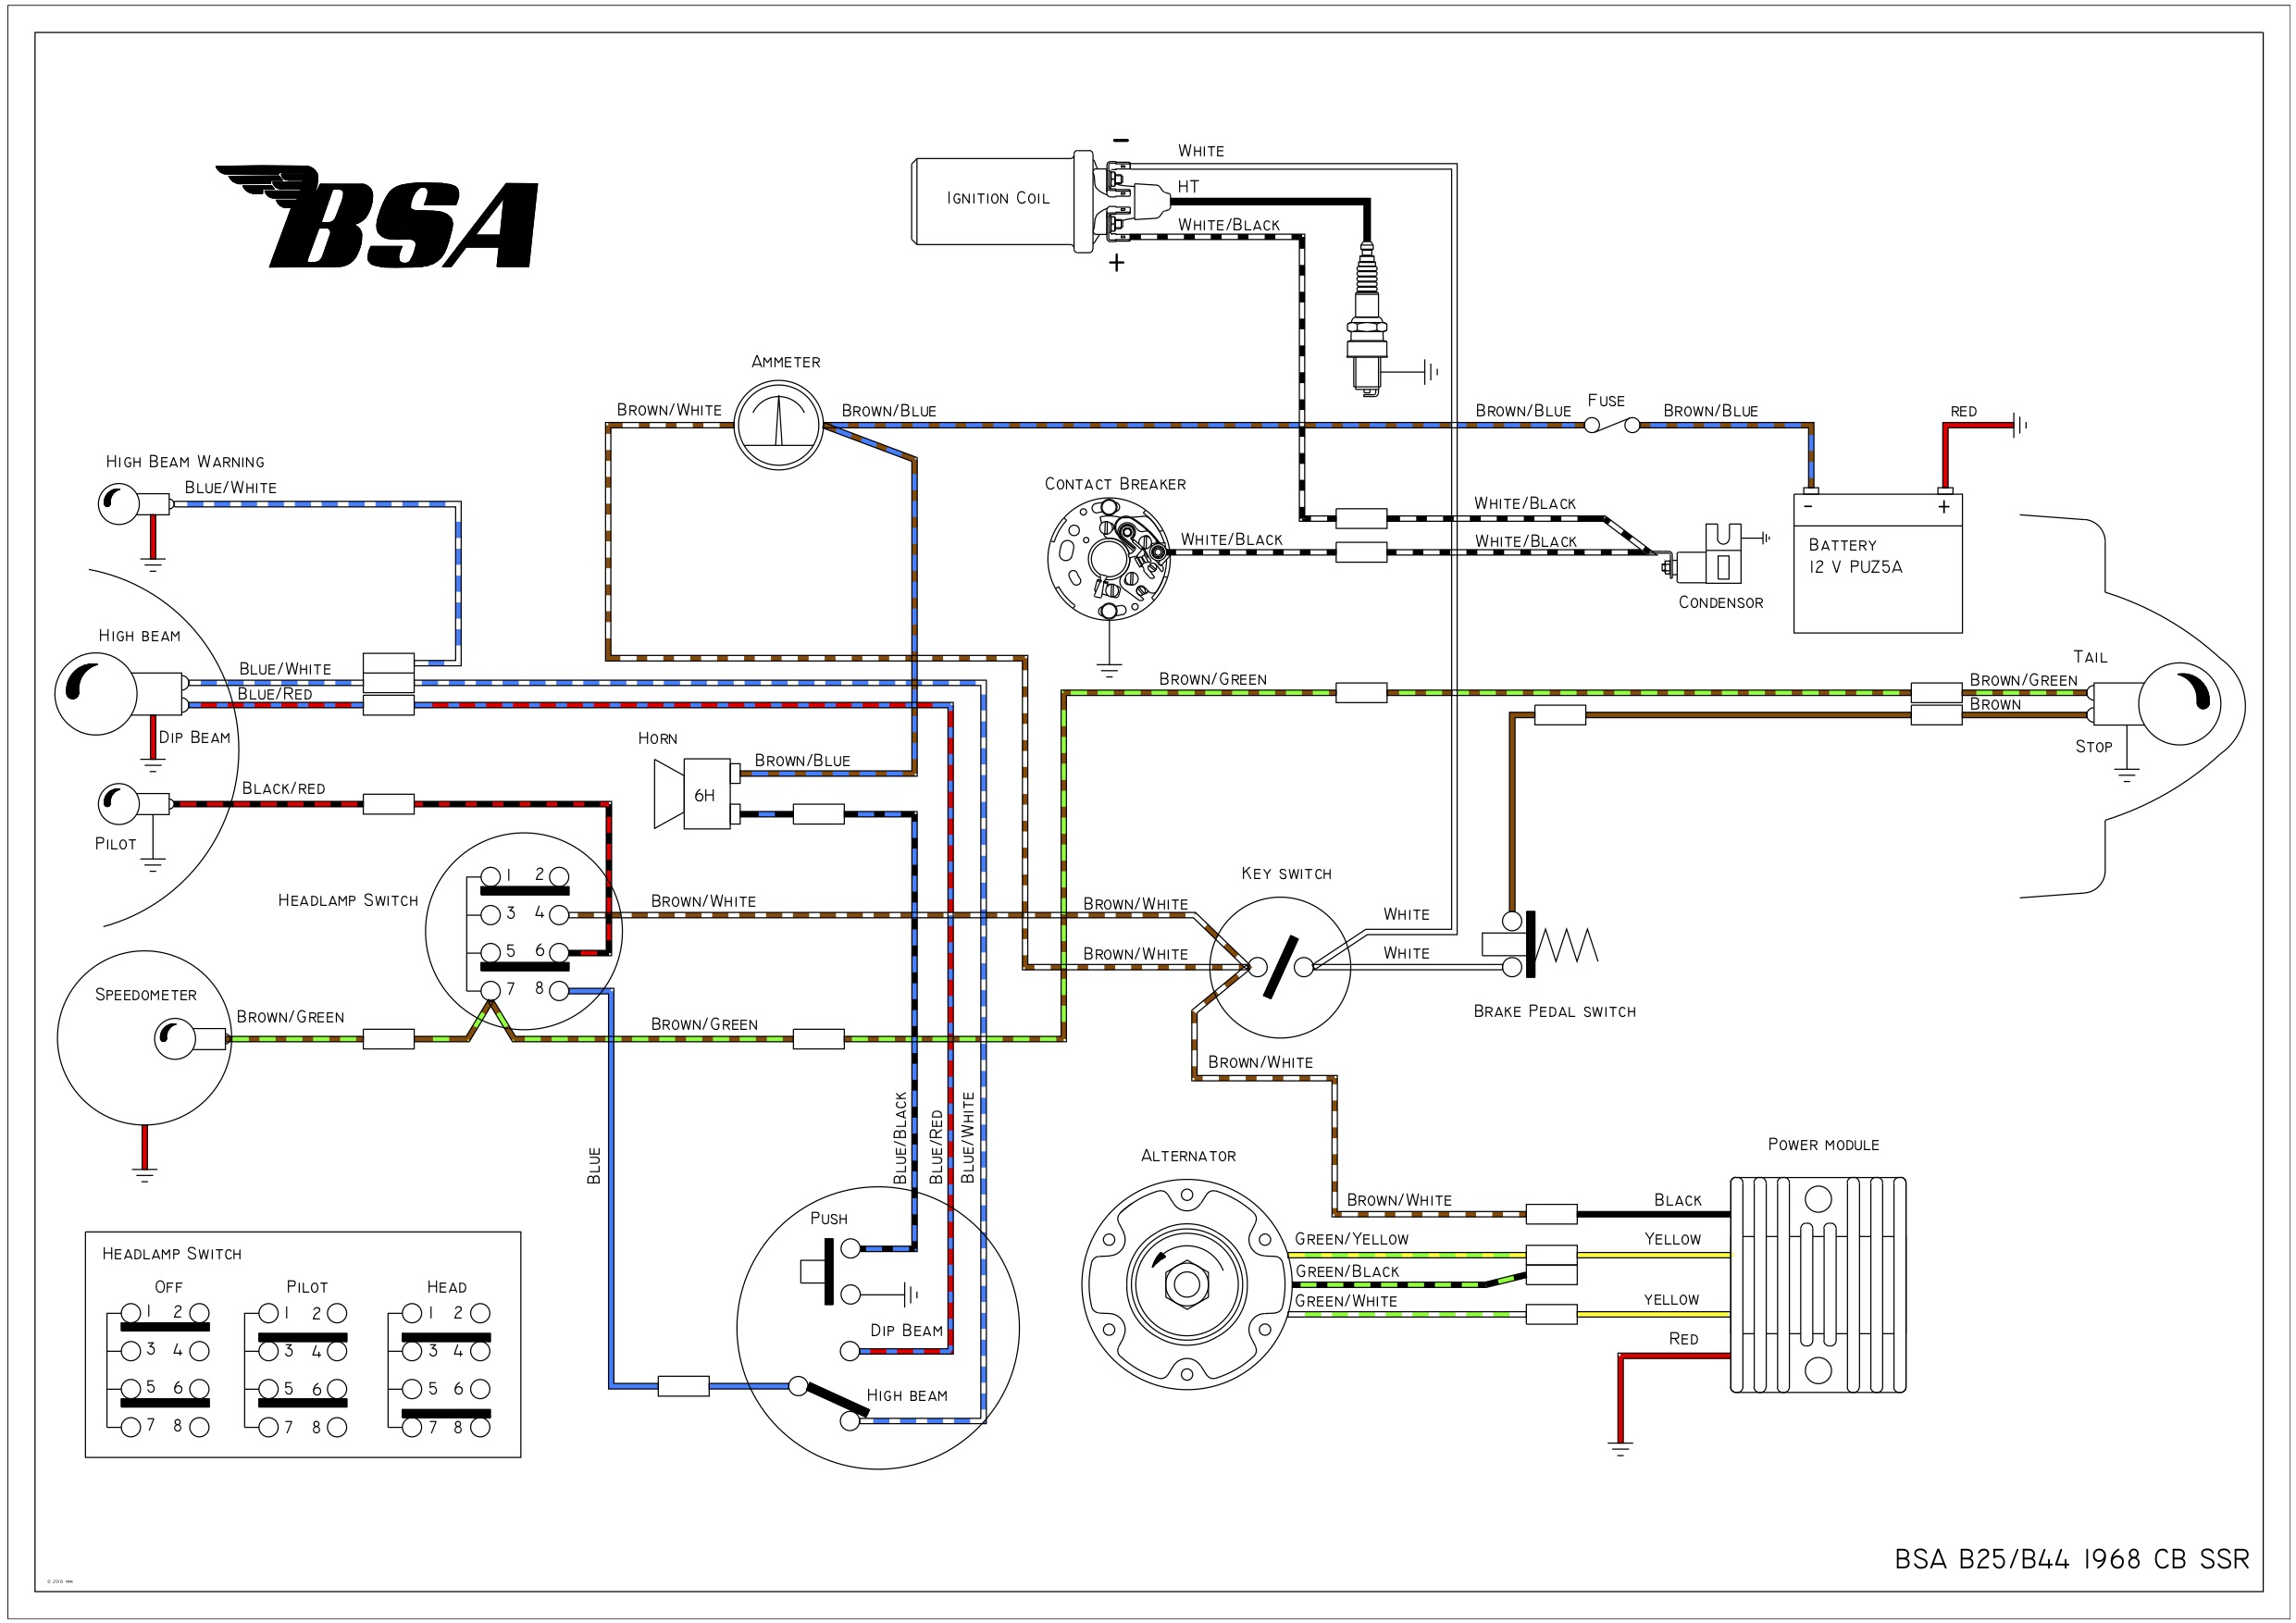 Bsa C15 Wiring Diagram 2009 Escalade Fuel Filter Begeboy Wiring Diagram Source